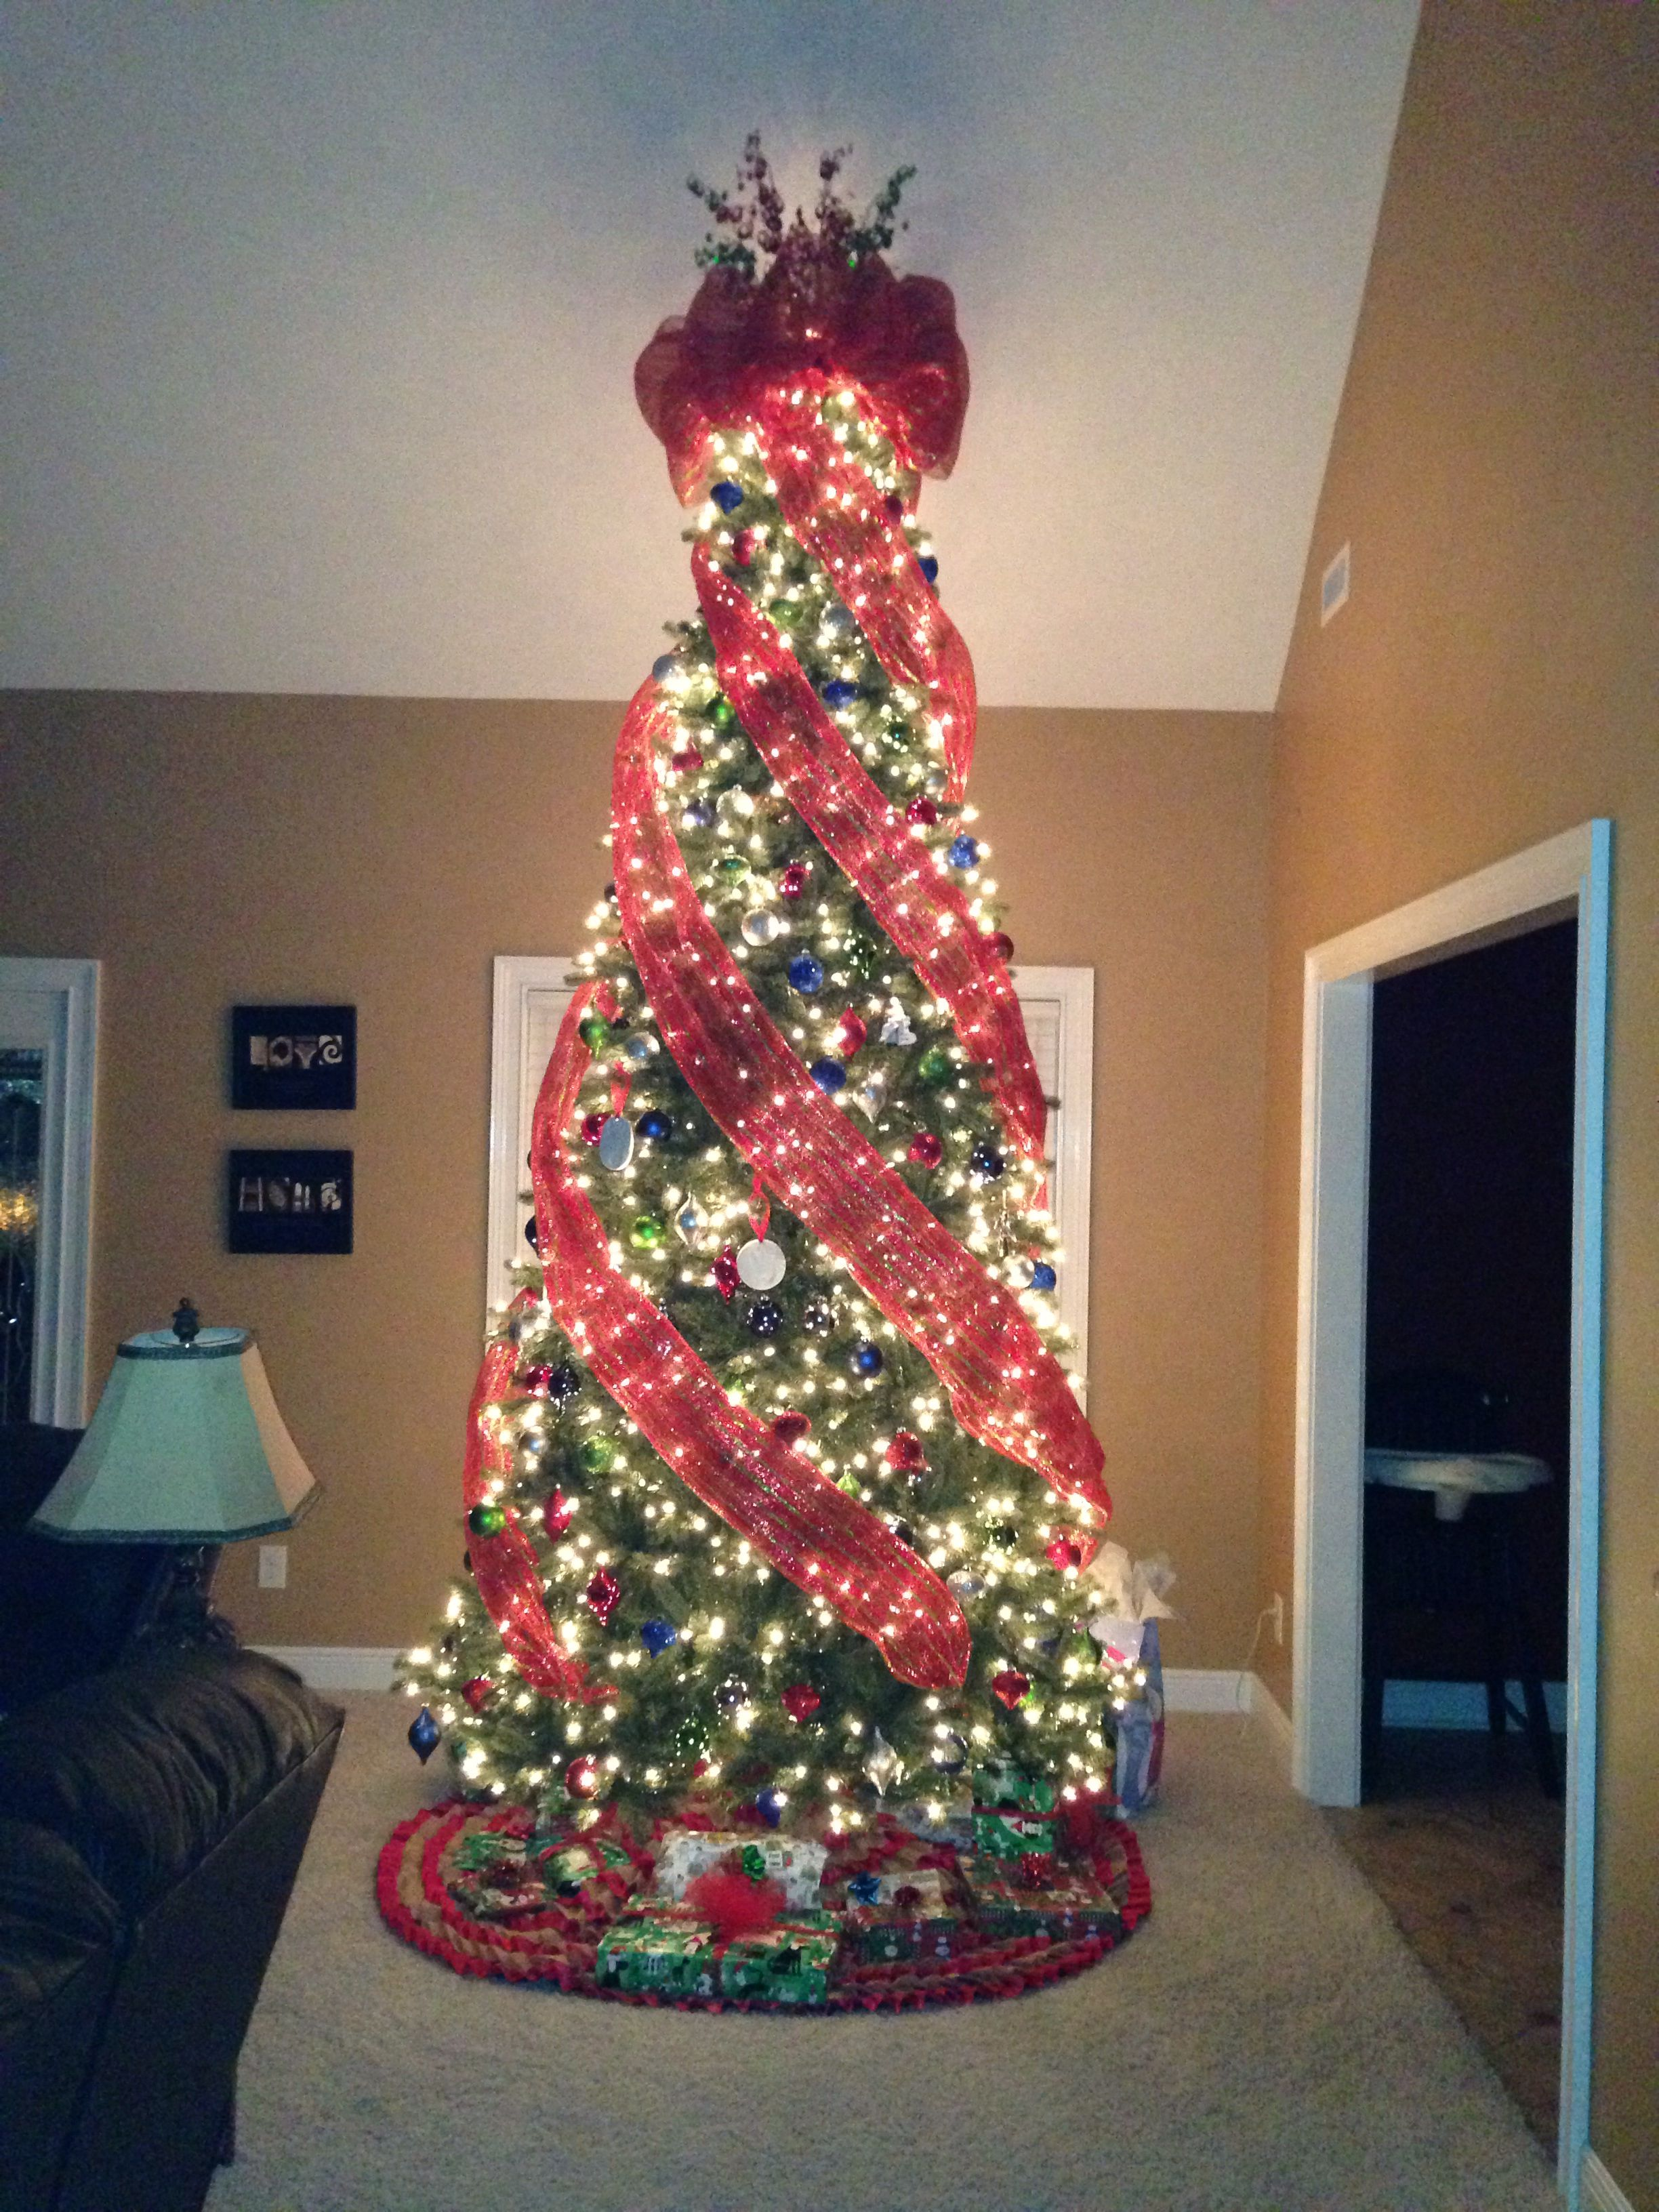 Our 12 ft deco mesh Christmas tree | Mesh christmas tree ...